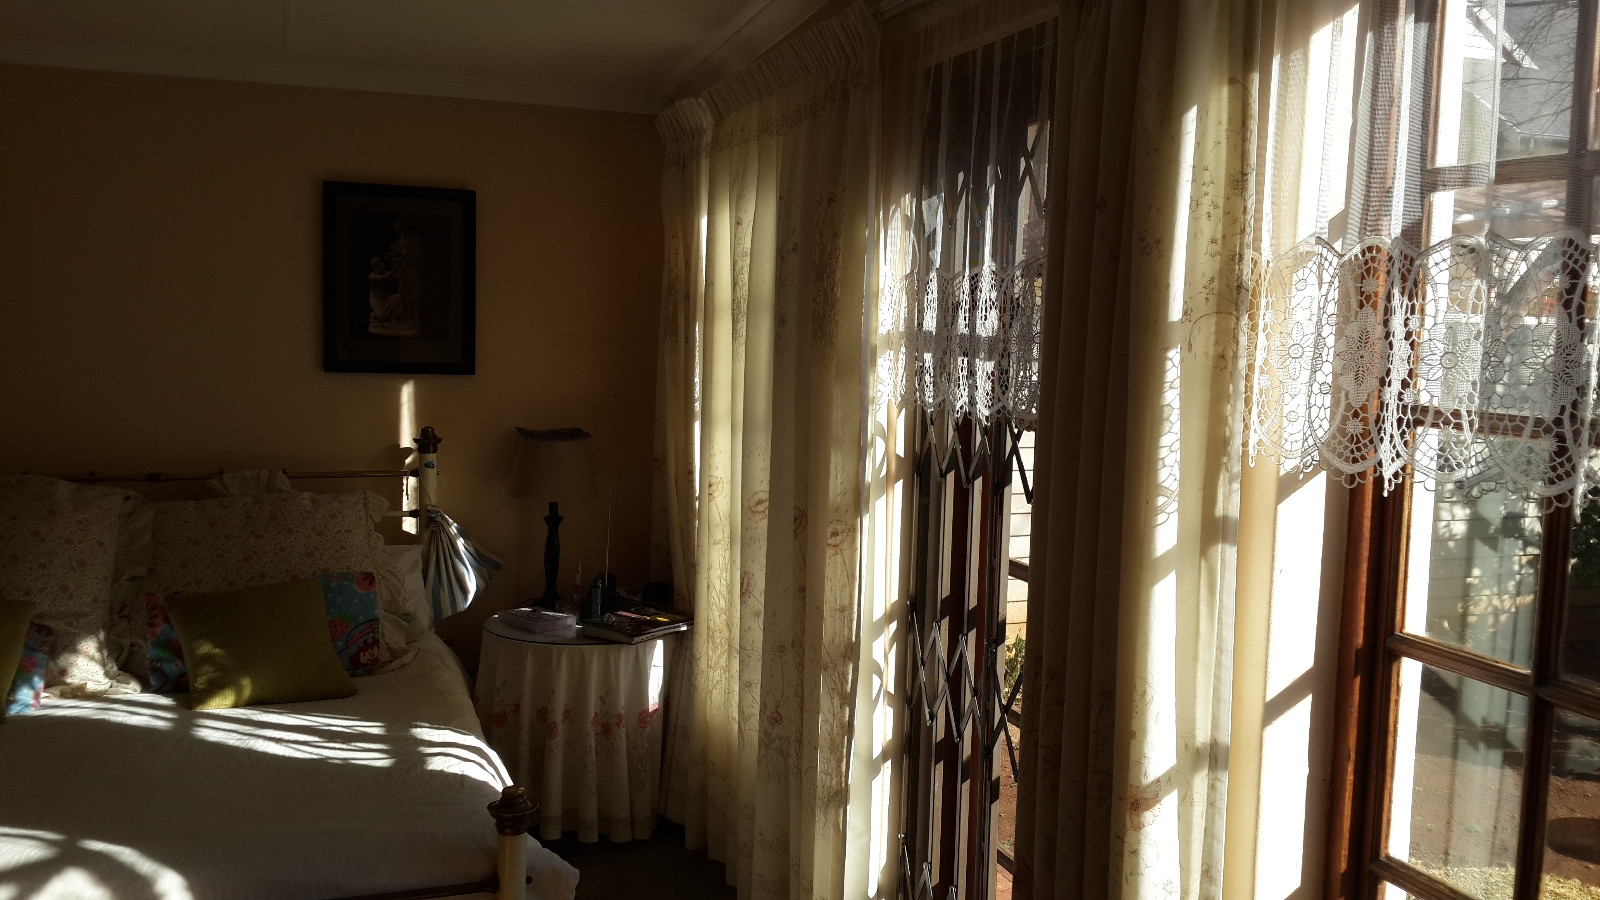 House in Bult - 20140724 091944